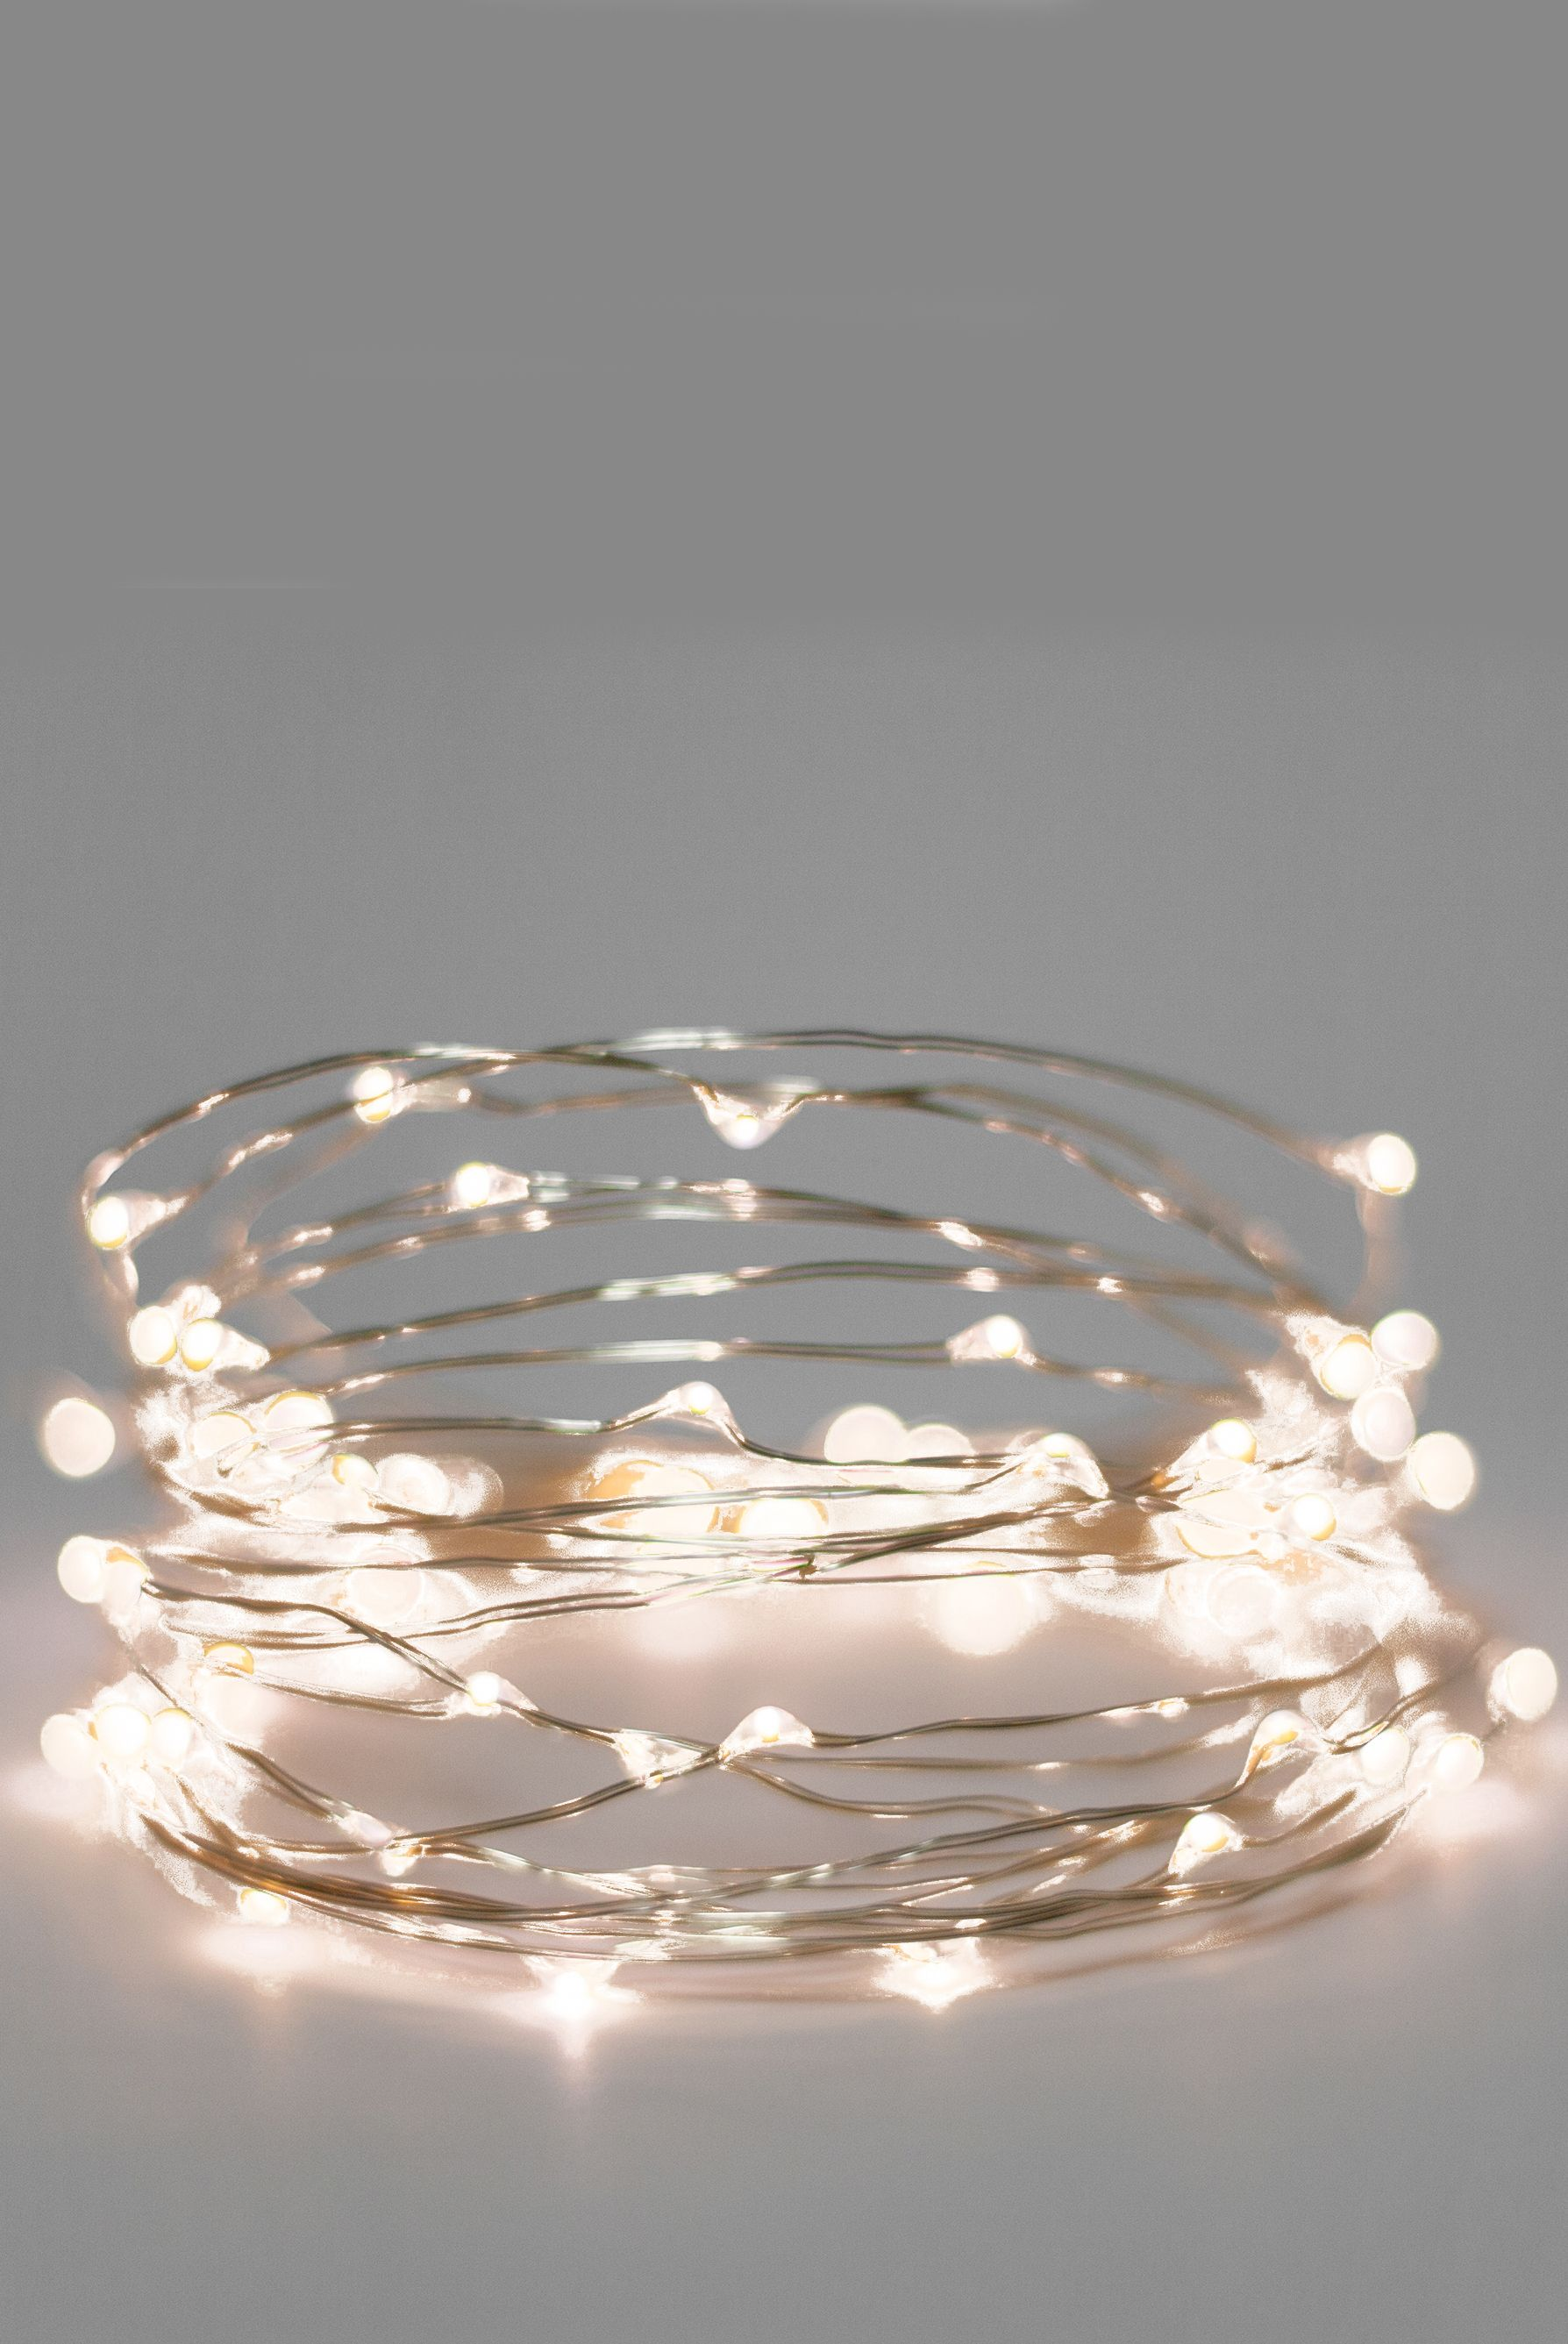 Cool white firefly lights | Pinterest | Fireflies, Centrepieces and ...